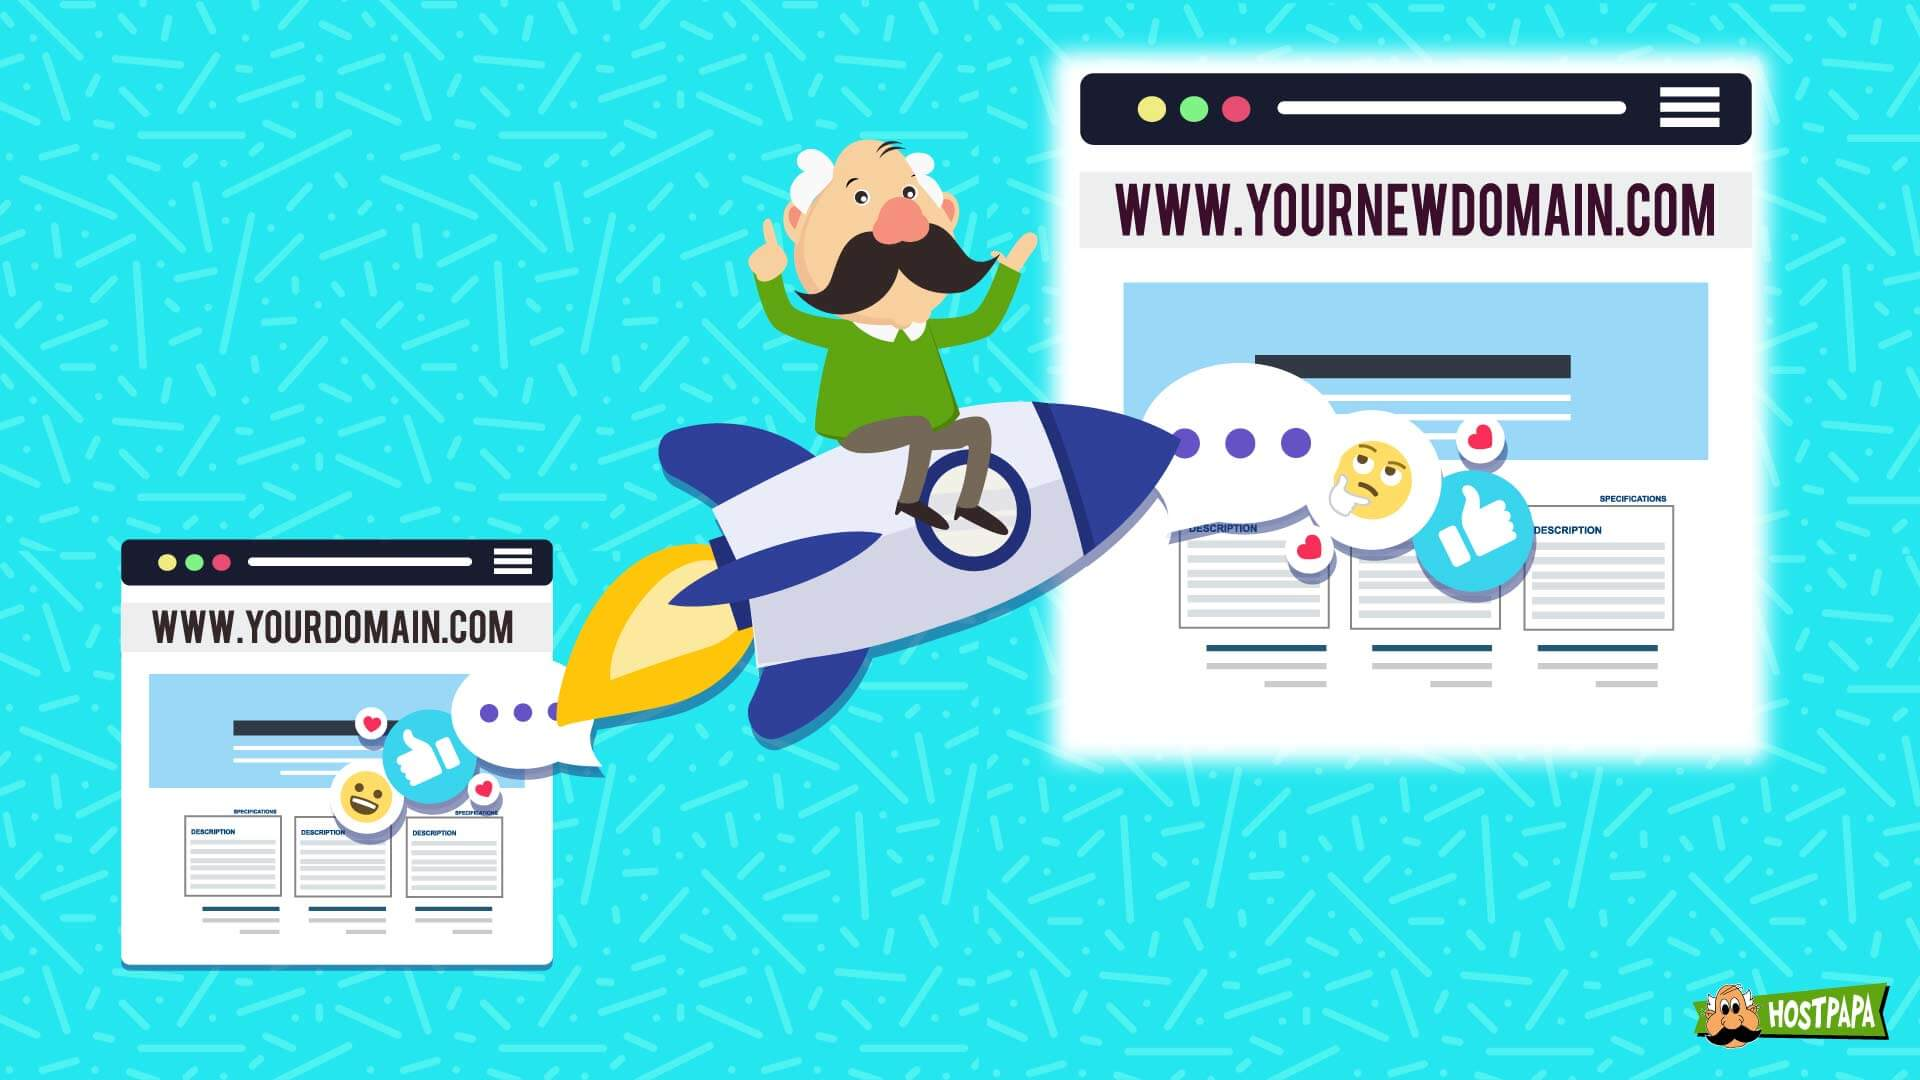 How to Change Your Domain Name Without Losing All Your Traffic